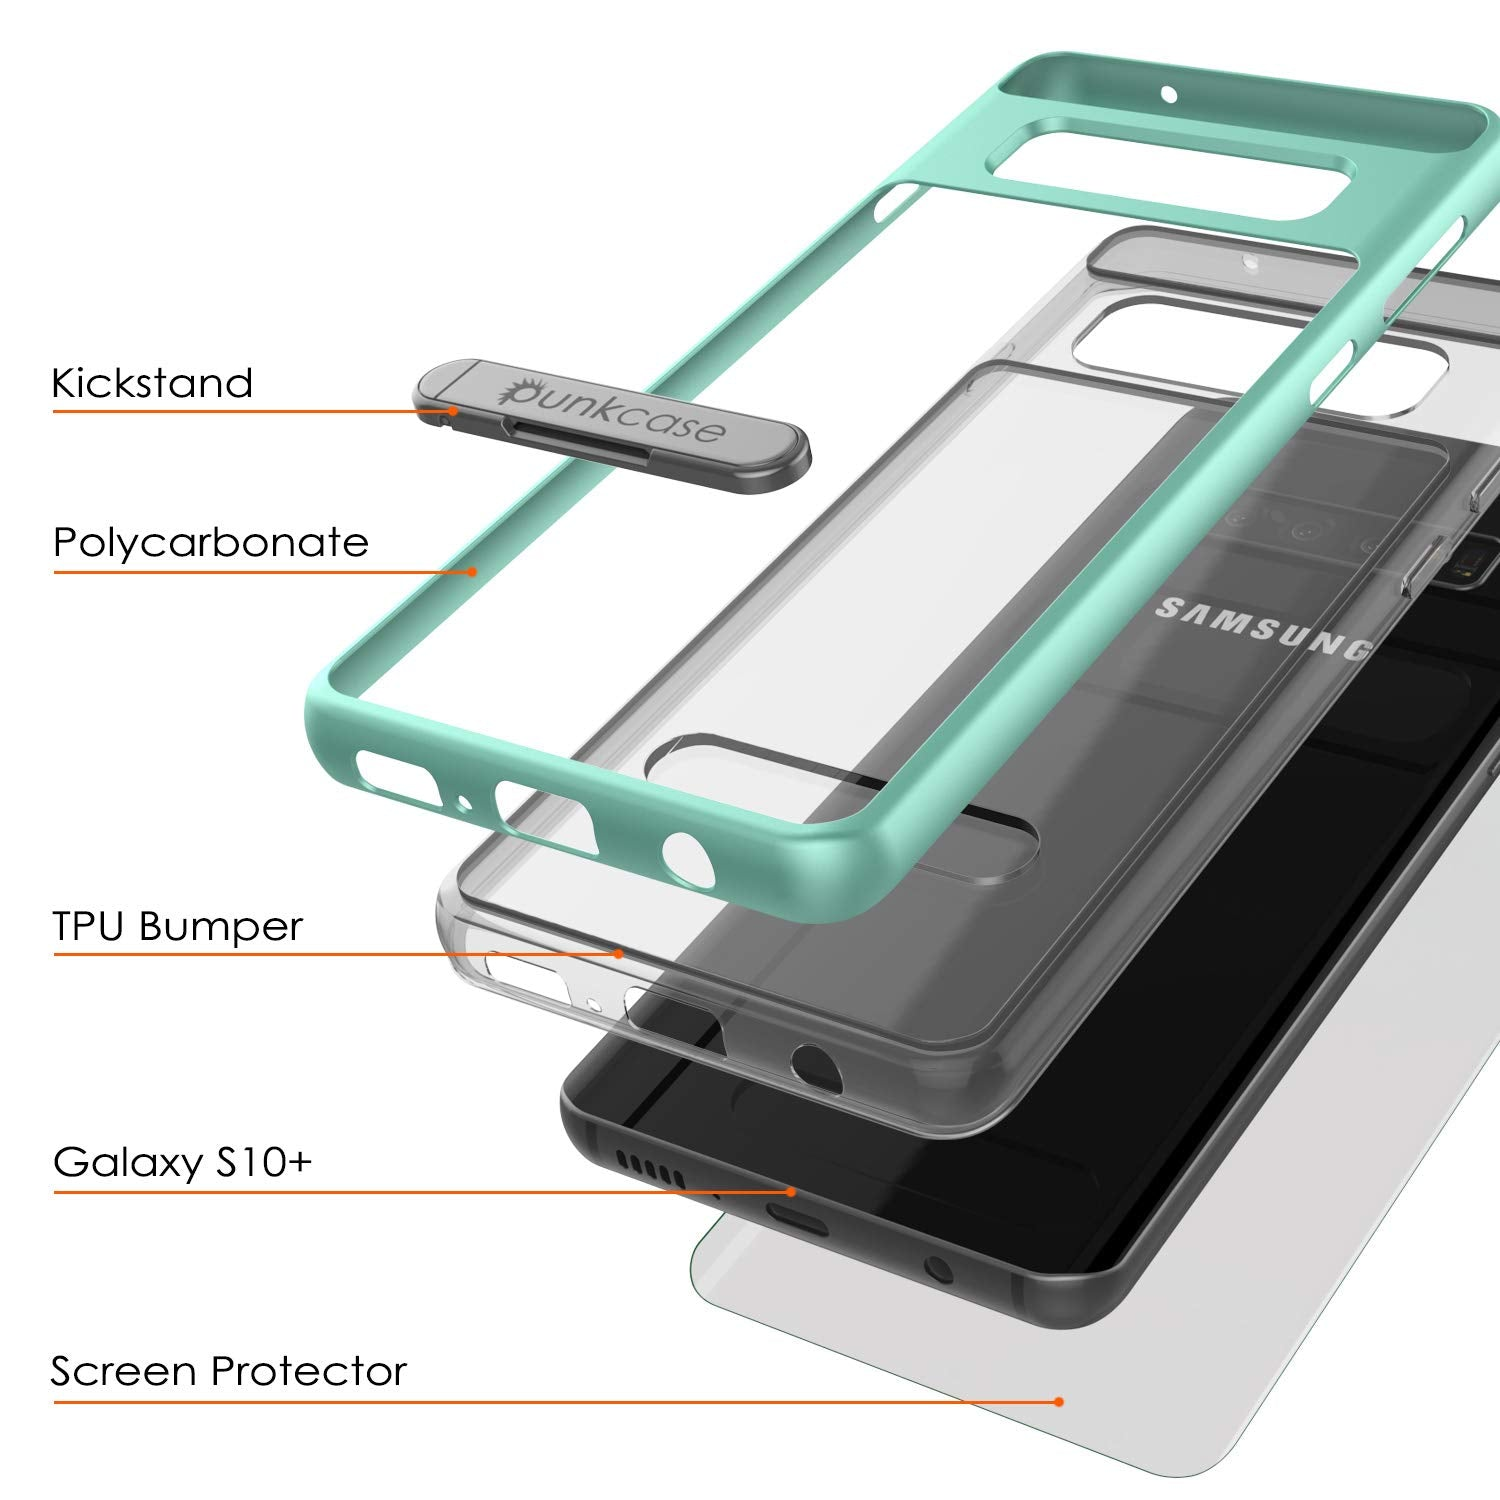 Galaxy S10+ Plus Case, PUNKcase [LUCID 3.0 Series] [Slim Fit] Armor Cover w/ Integrated Screen Protector [Teal]